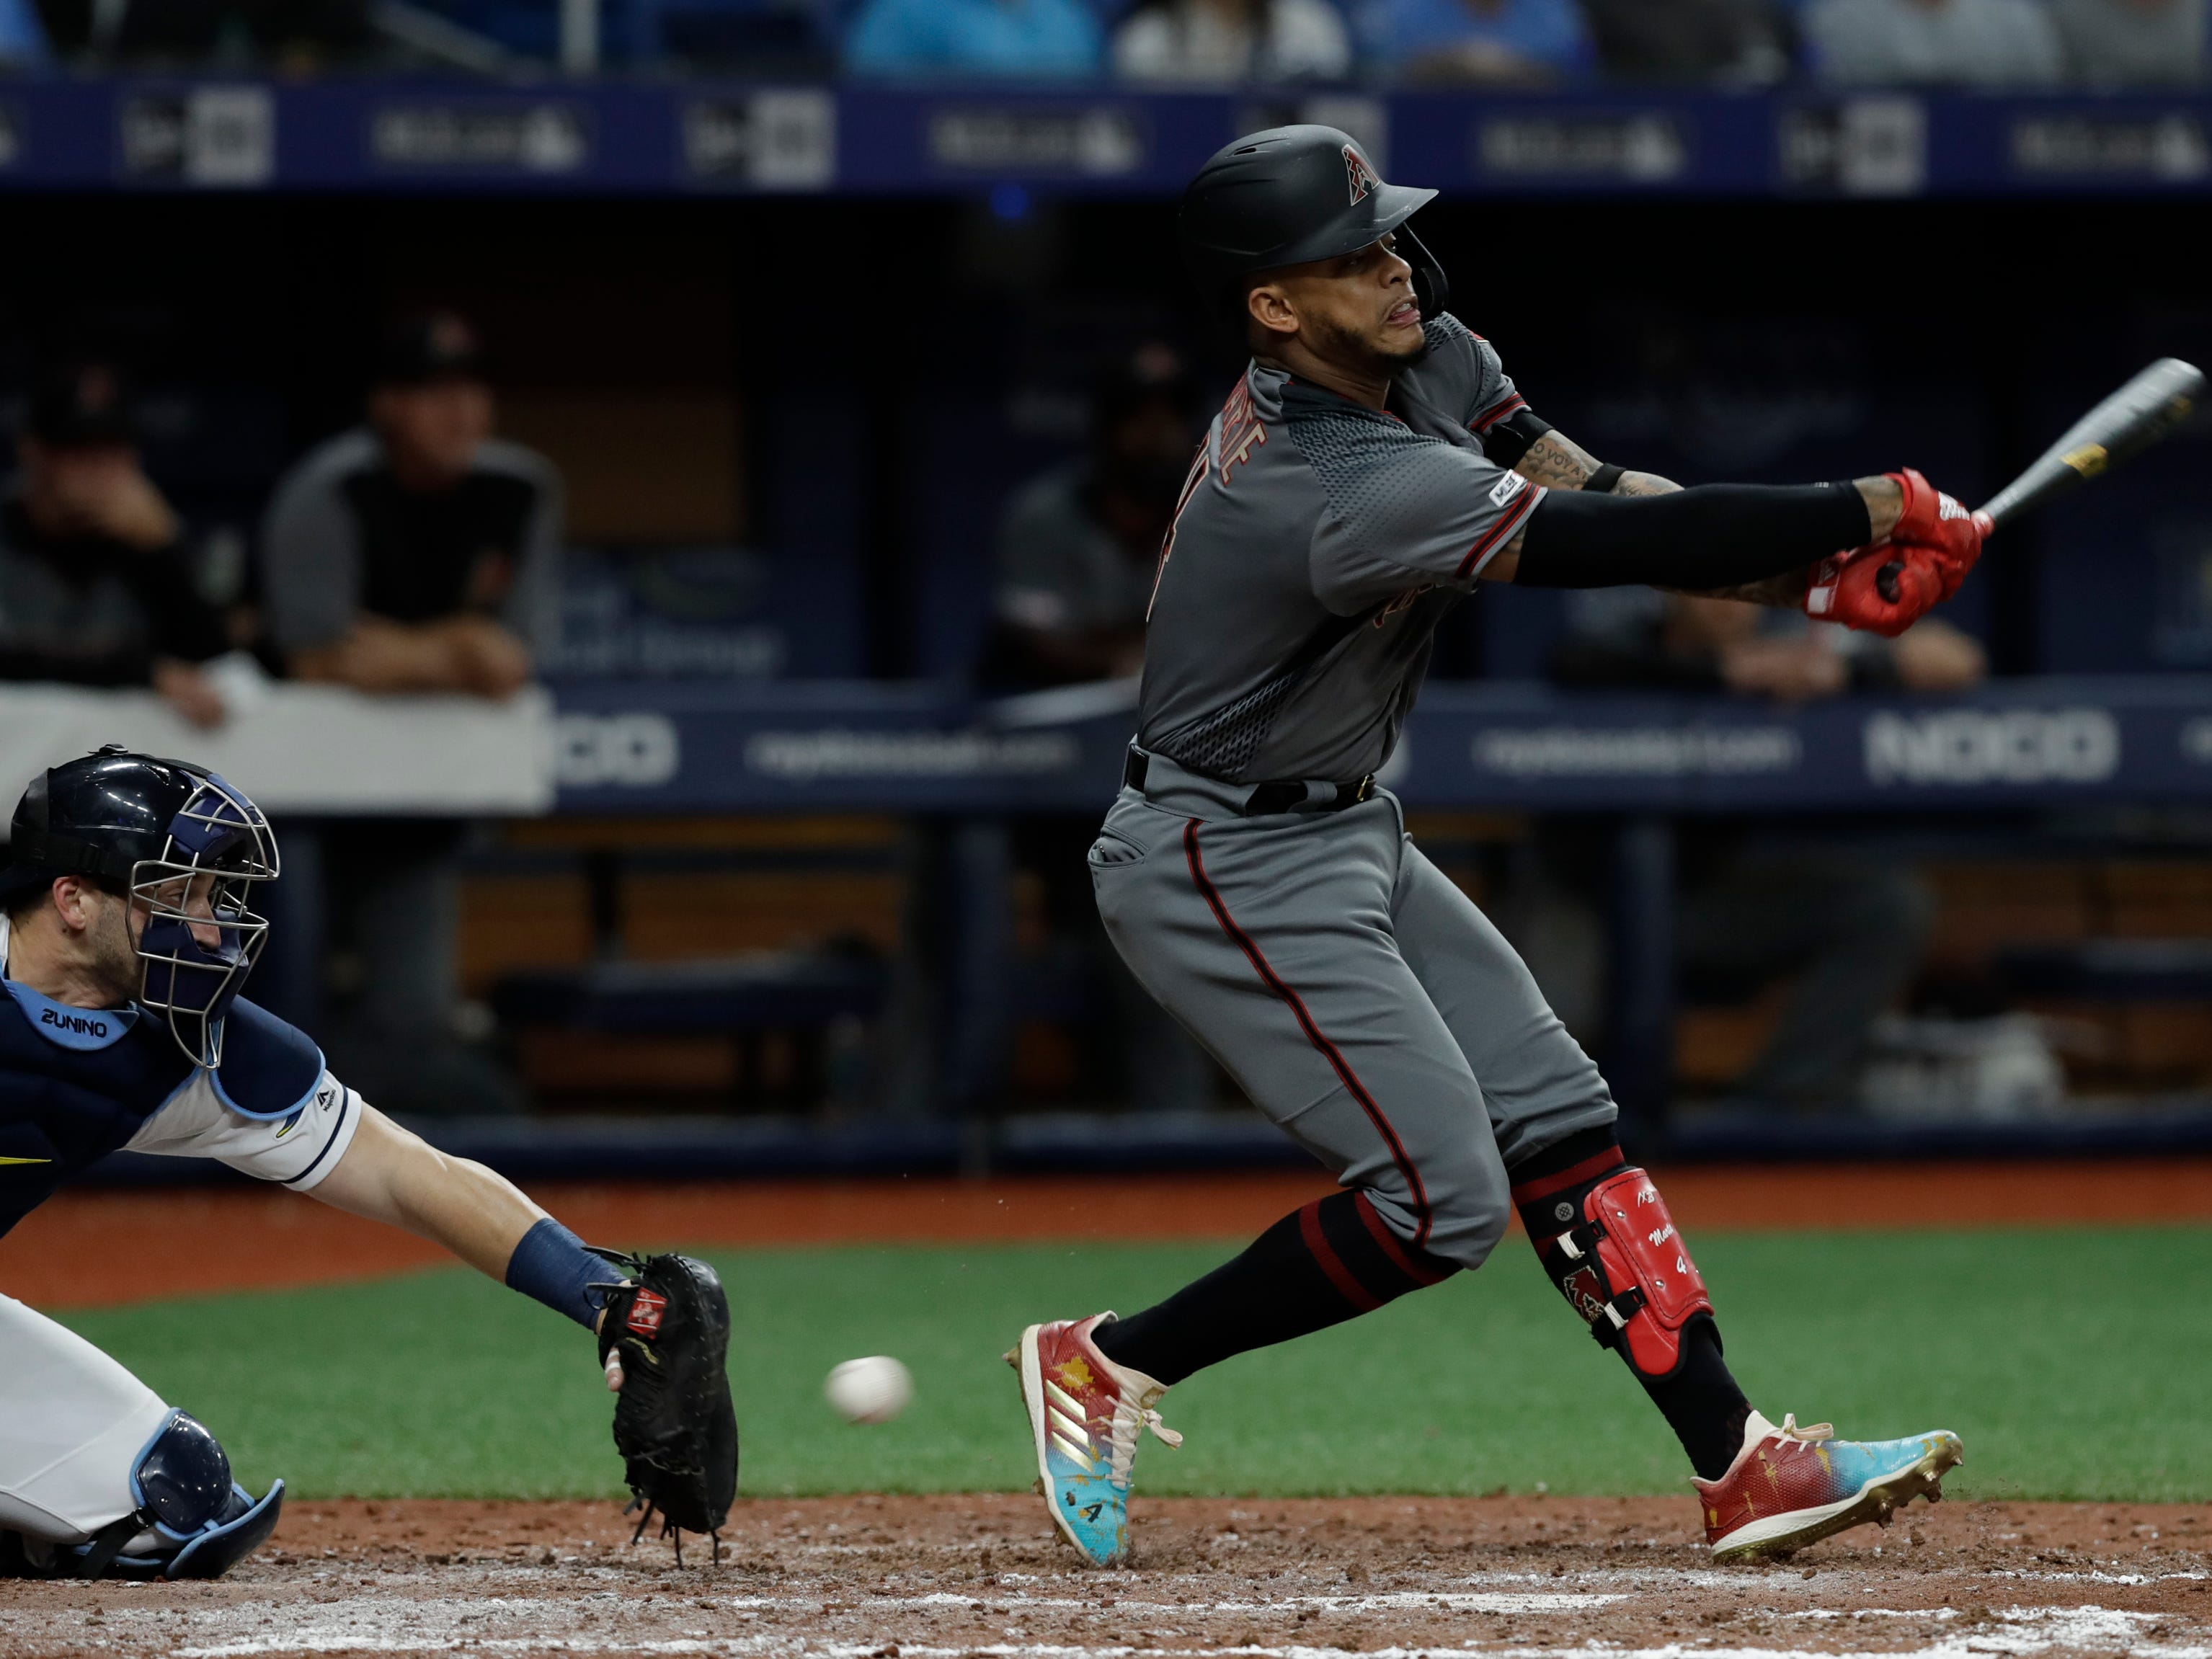 Arizona Diamondbacks' Ketel Marte misses a pitch from Tampa Bay Rays' Blake Snell during the sixth inning of a baseball game Monday, May 6, 2019, in St. Petersburg, Fla. (AP Photo/Chris O'Meara)